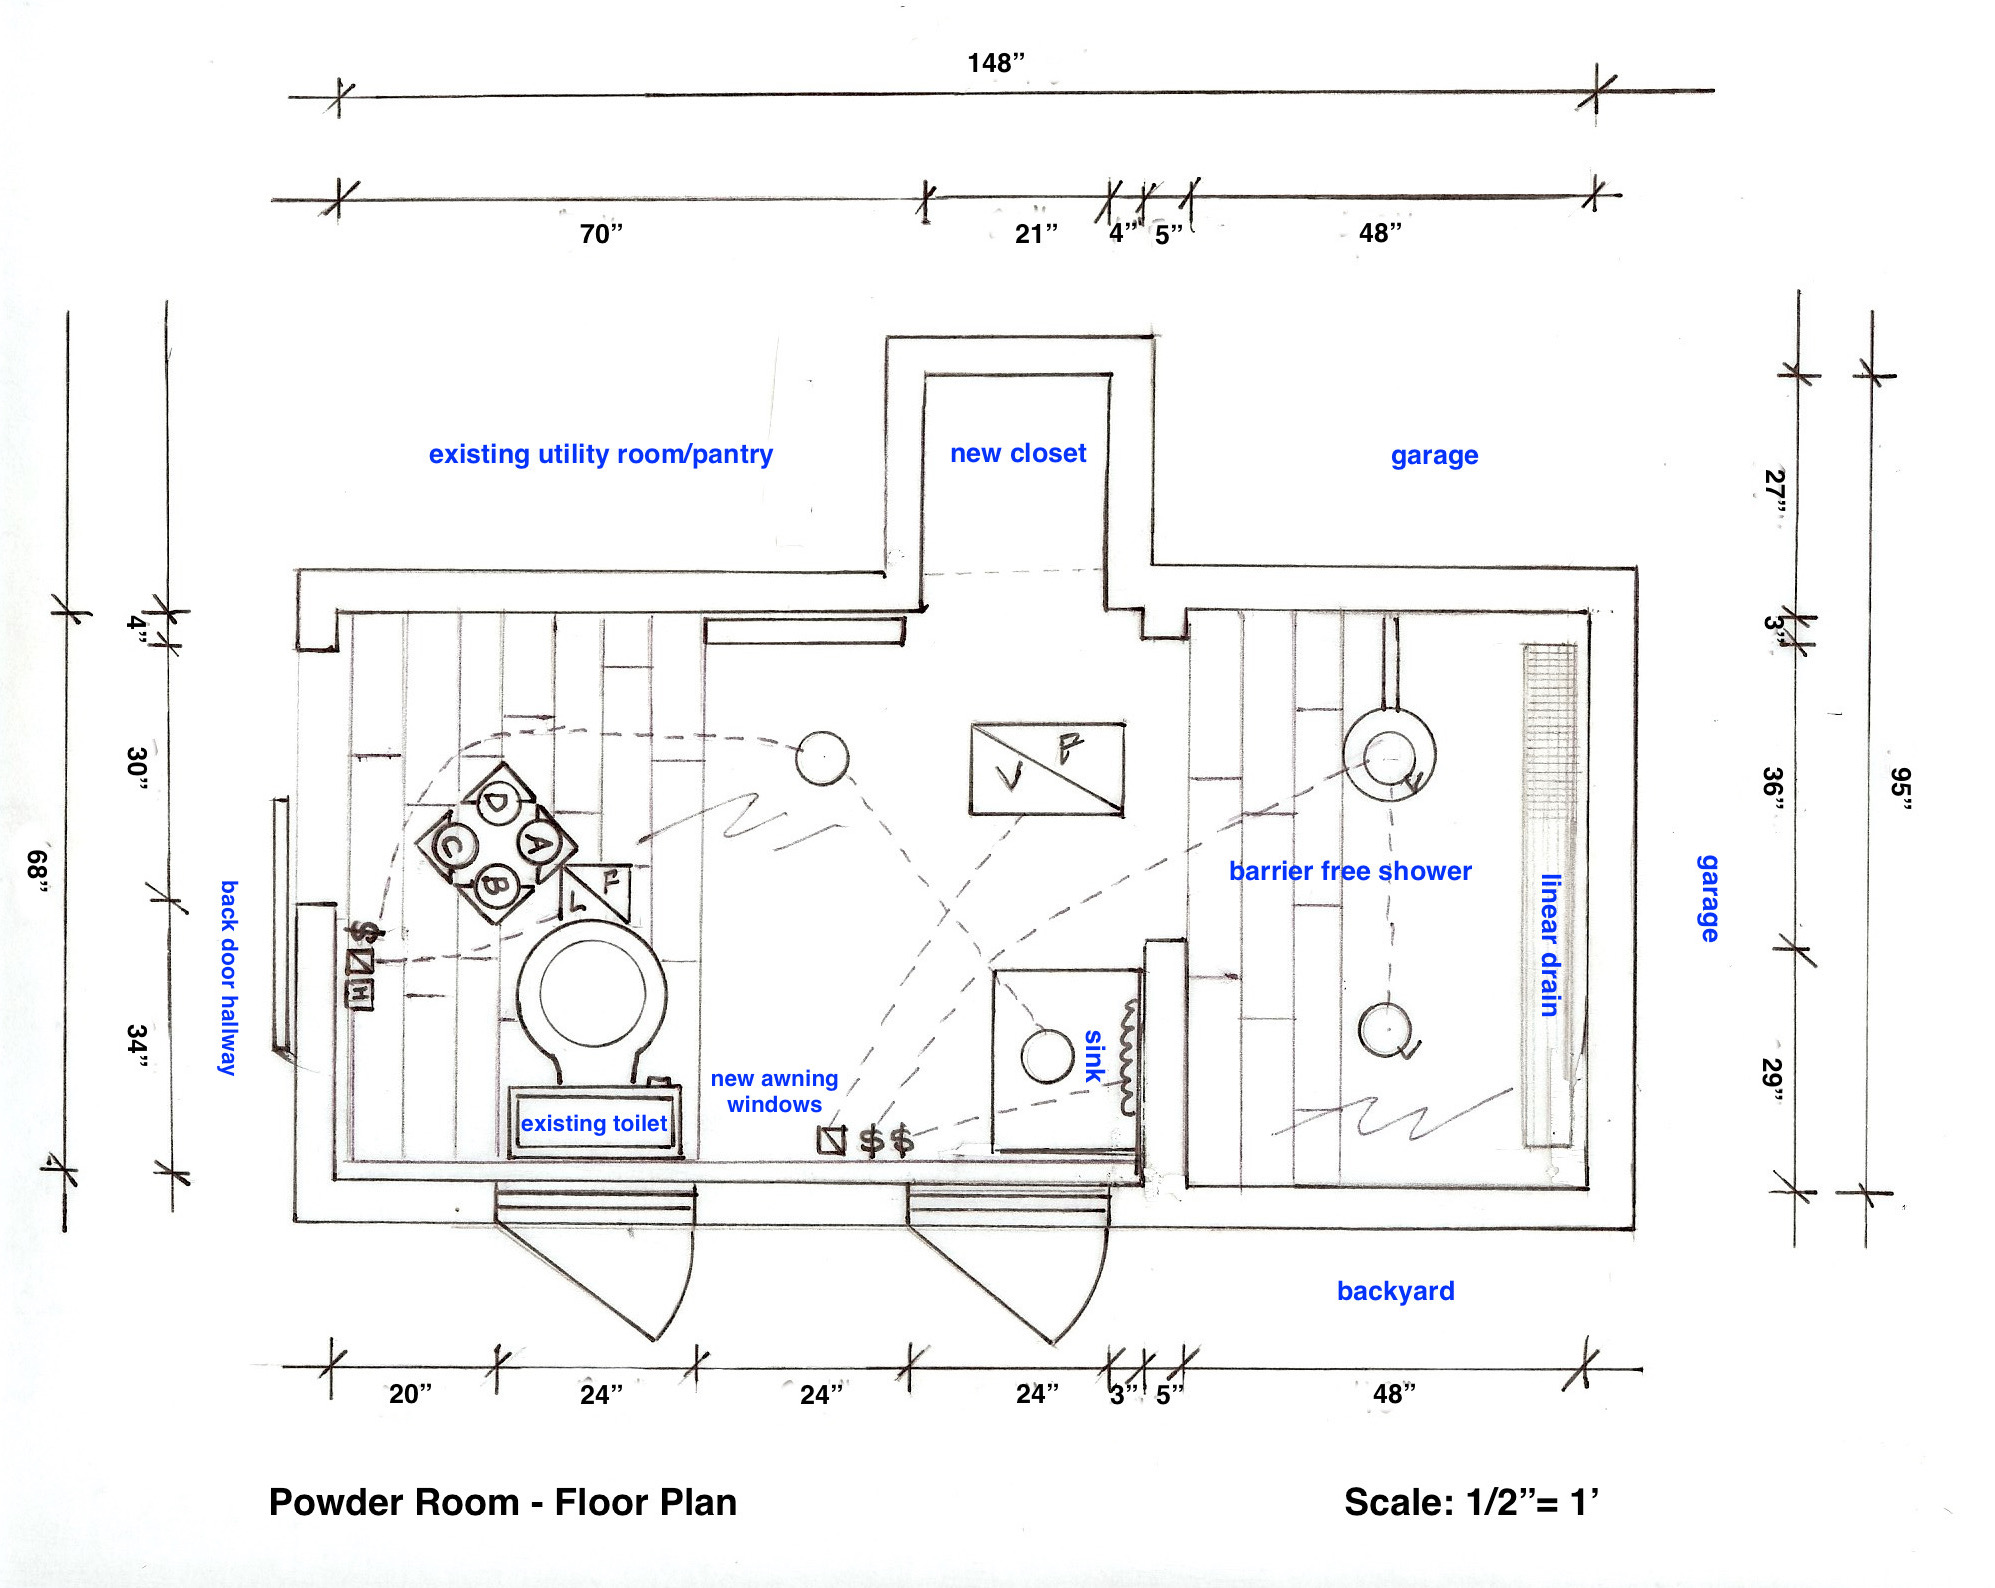 powder room - floor plan for the powder room expansion - Atticmag